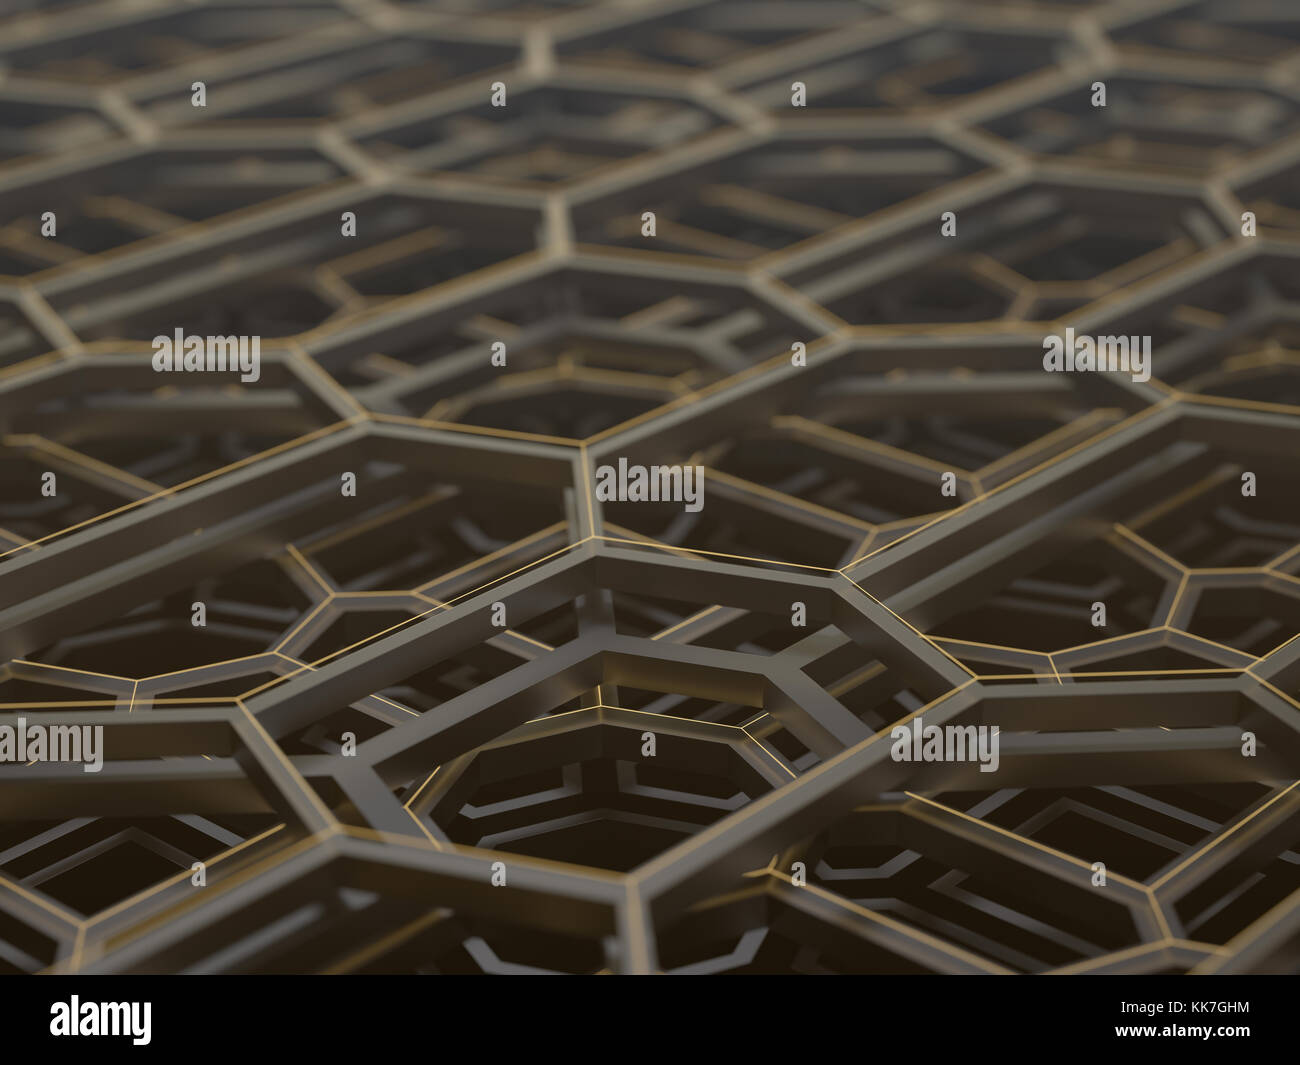 3D illustration. Concept image d'une structure technologique complexe et abstrait. Photo Stock